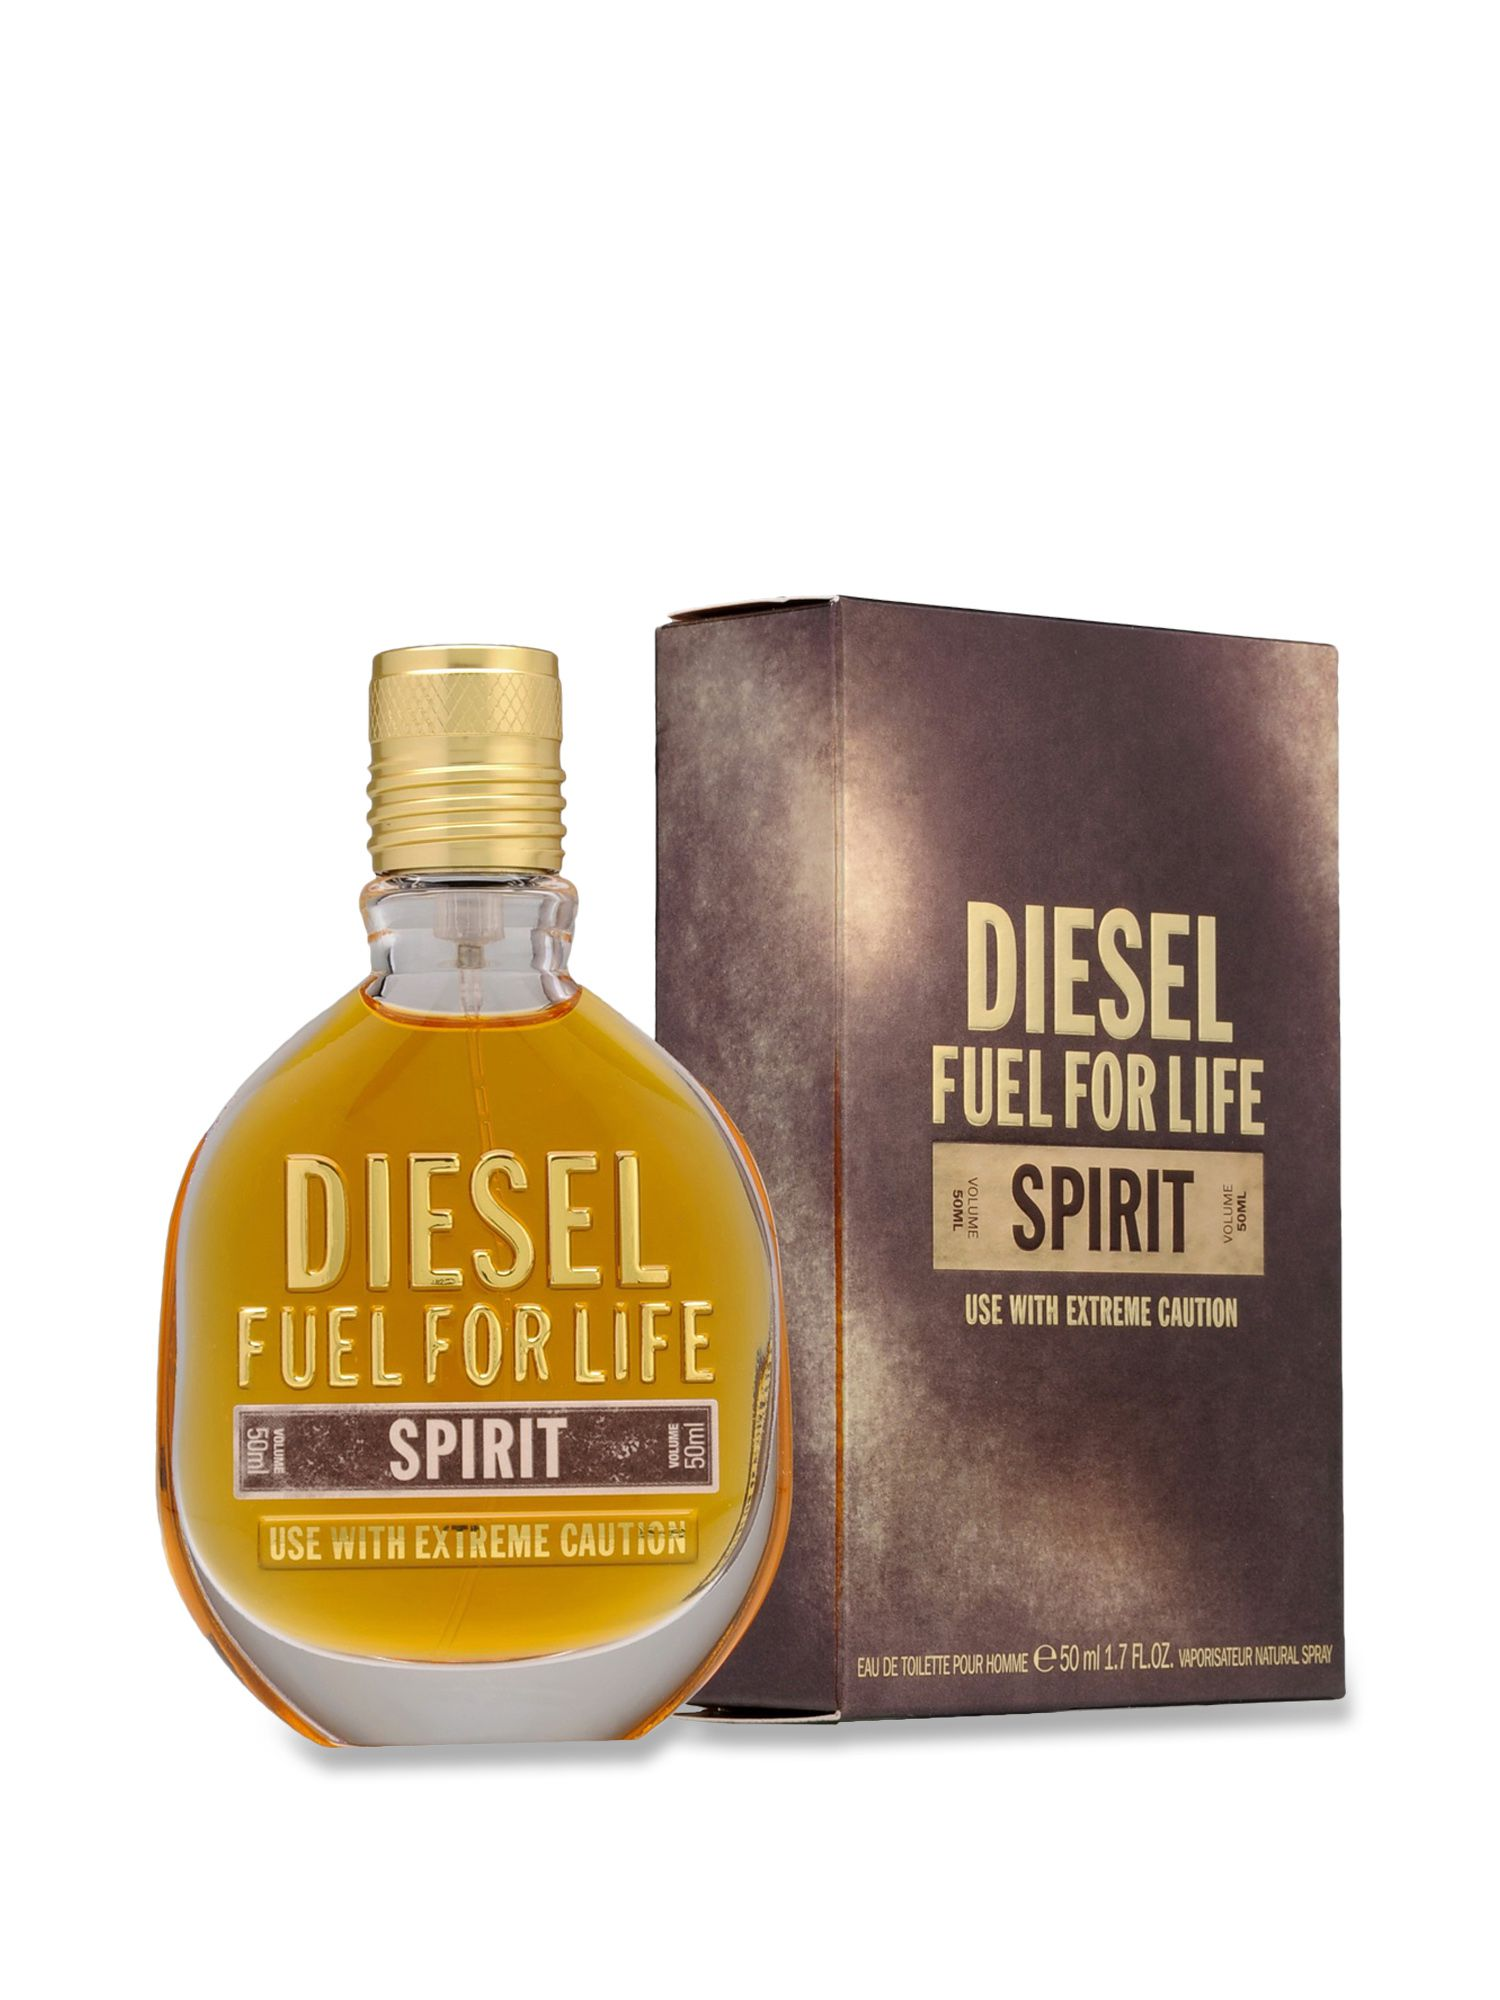 Diesel - FUEL FOR LIFE SPIRIT 50ML,  - Fuel For Life - Image 2